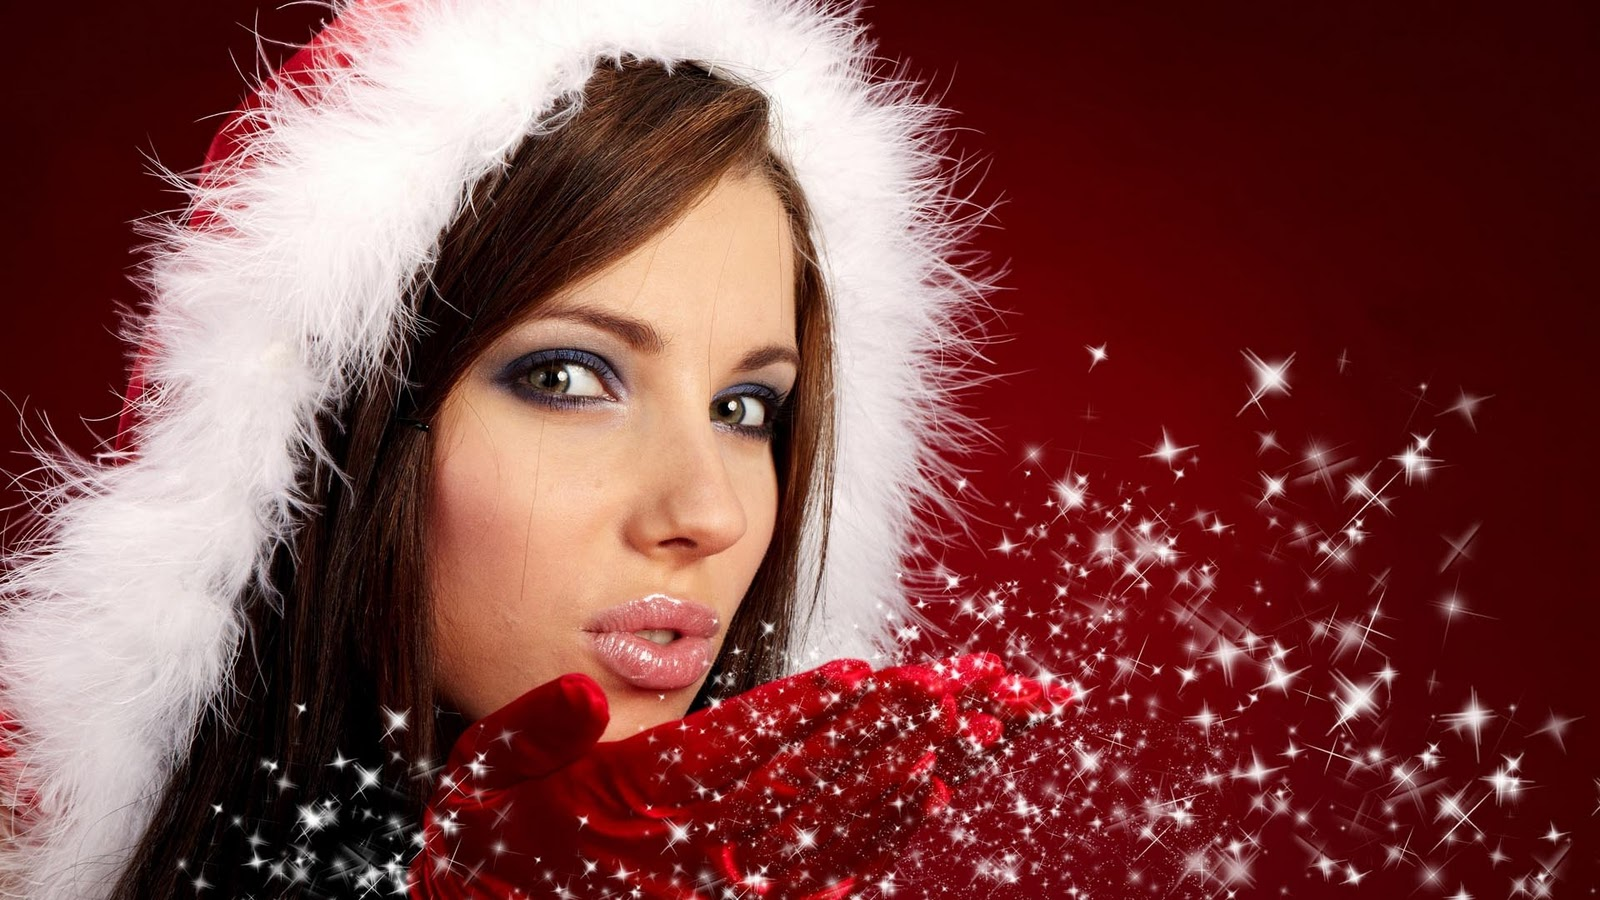 Hd wallpaper ladies - Filename Best Top Desktop Beautiful Christmas Girls Wallpapers Hd Christmas Girls Wallpaper Jpg